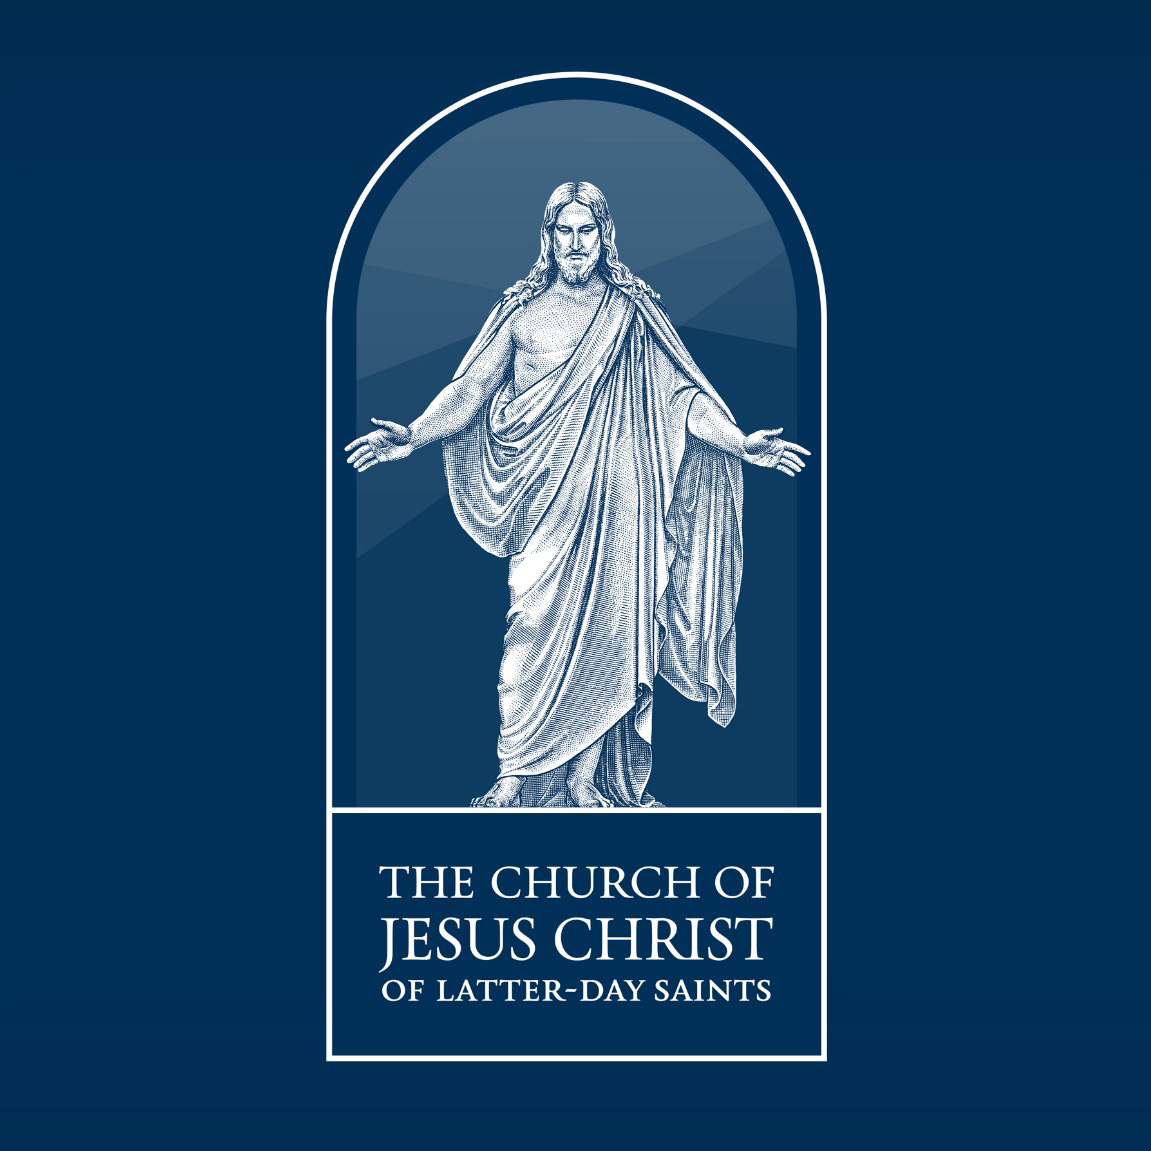 Brand New: New Logo For The Church Of Jesus Christ Of